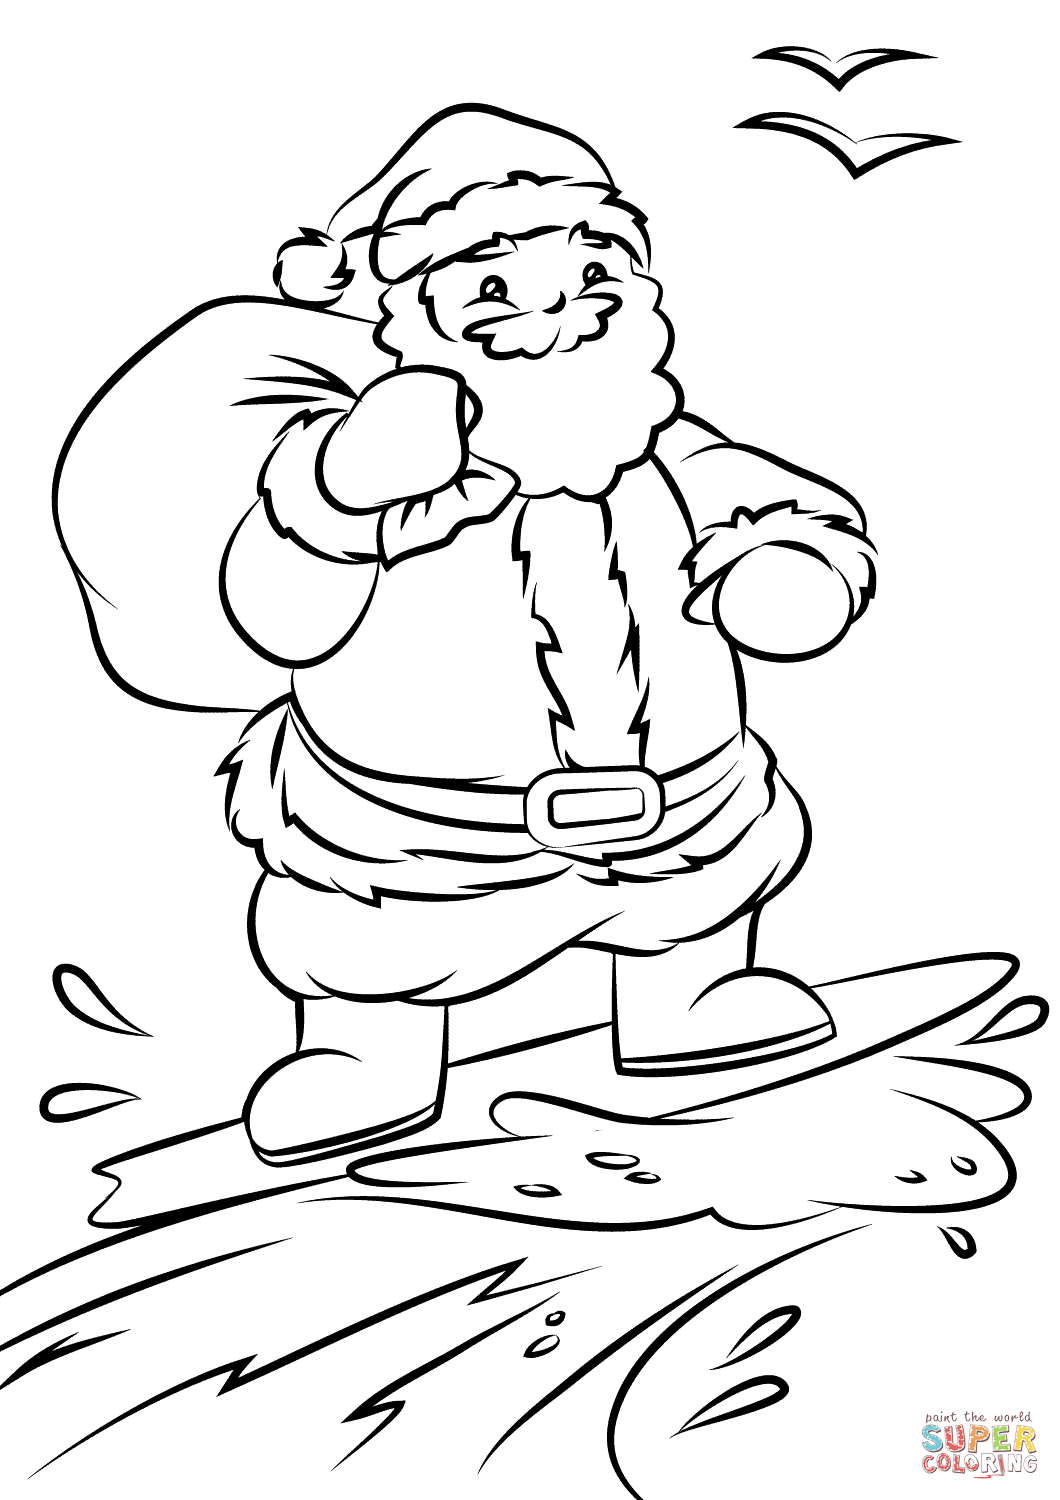 Santa Around The World Coloring Pages With Surfing Colouring Google Search Christmas STAMPS